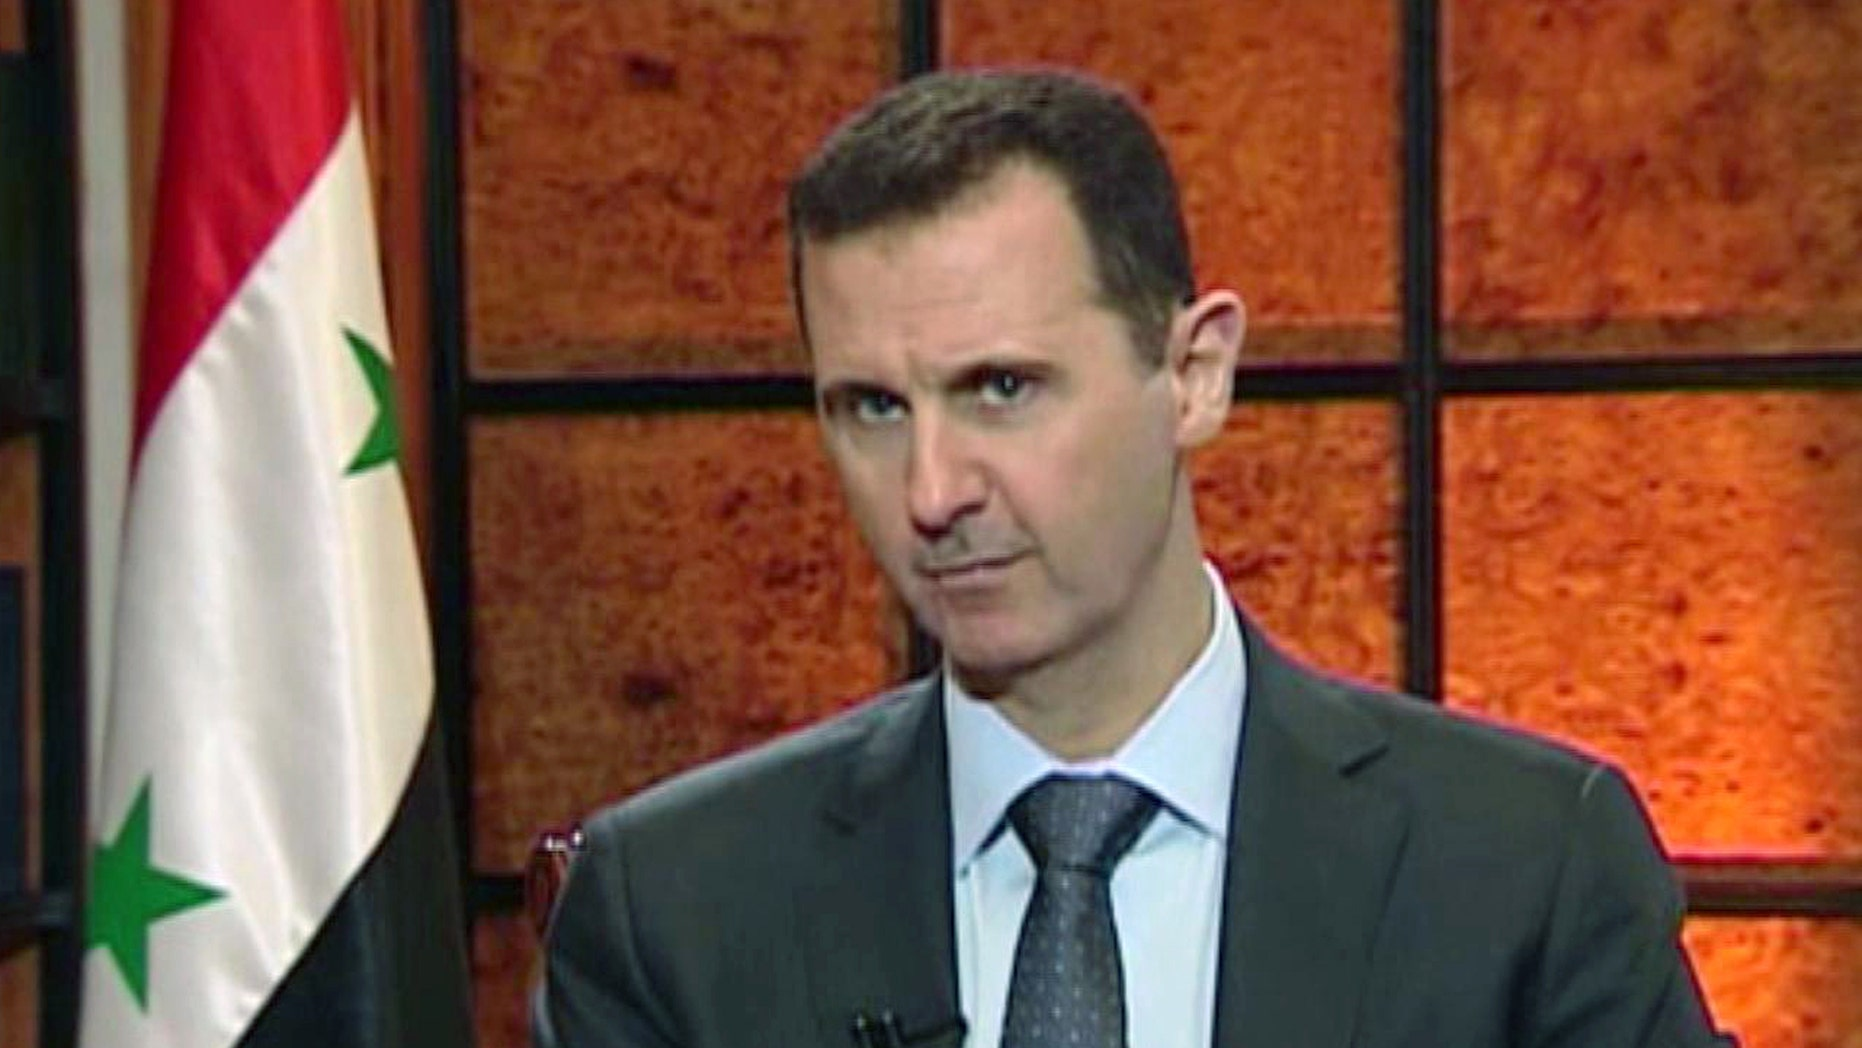 FILE - In this file image from video broadcast on Syrian state television Wednesday, April 17, 2013, President Bashar Assad speaks during an interview. The Syrian government wants more details before deciding whether to take part in a proposed U.S.-Russian initiative to negotiate a peaceful end to Syria's crisis, the country's information minister said Tuesday, May 14, 2013, staking out a similar position to the main opposition group. One of the key sticking points in even bringing the sides to the table for talks has been the role of Assad in any negotiated transition.(AP Photo/Syrian State TV via AP video, File)